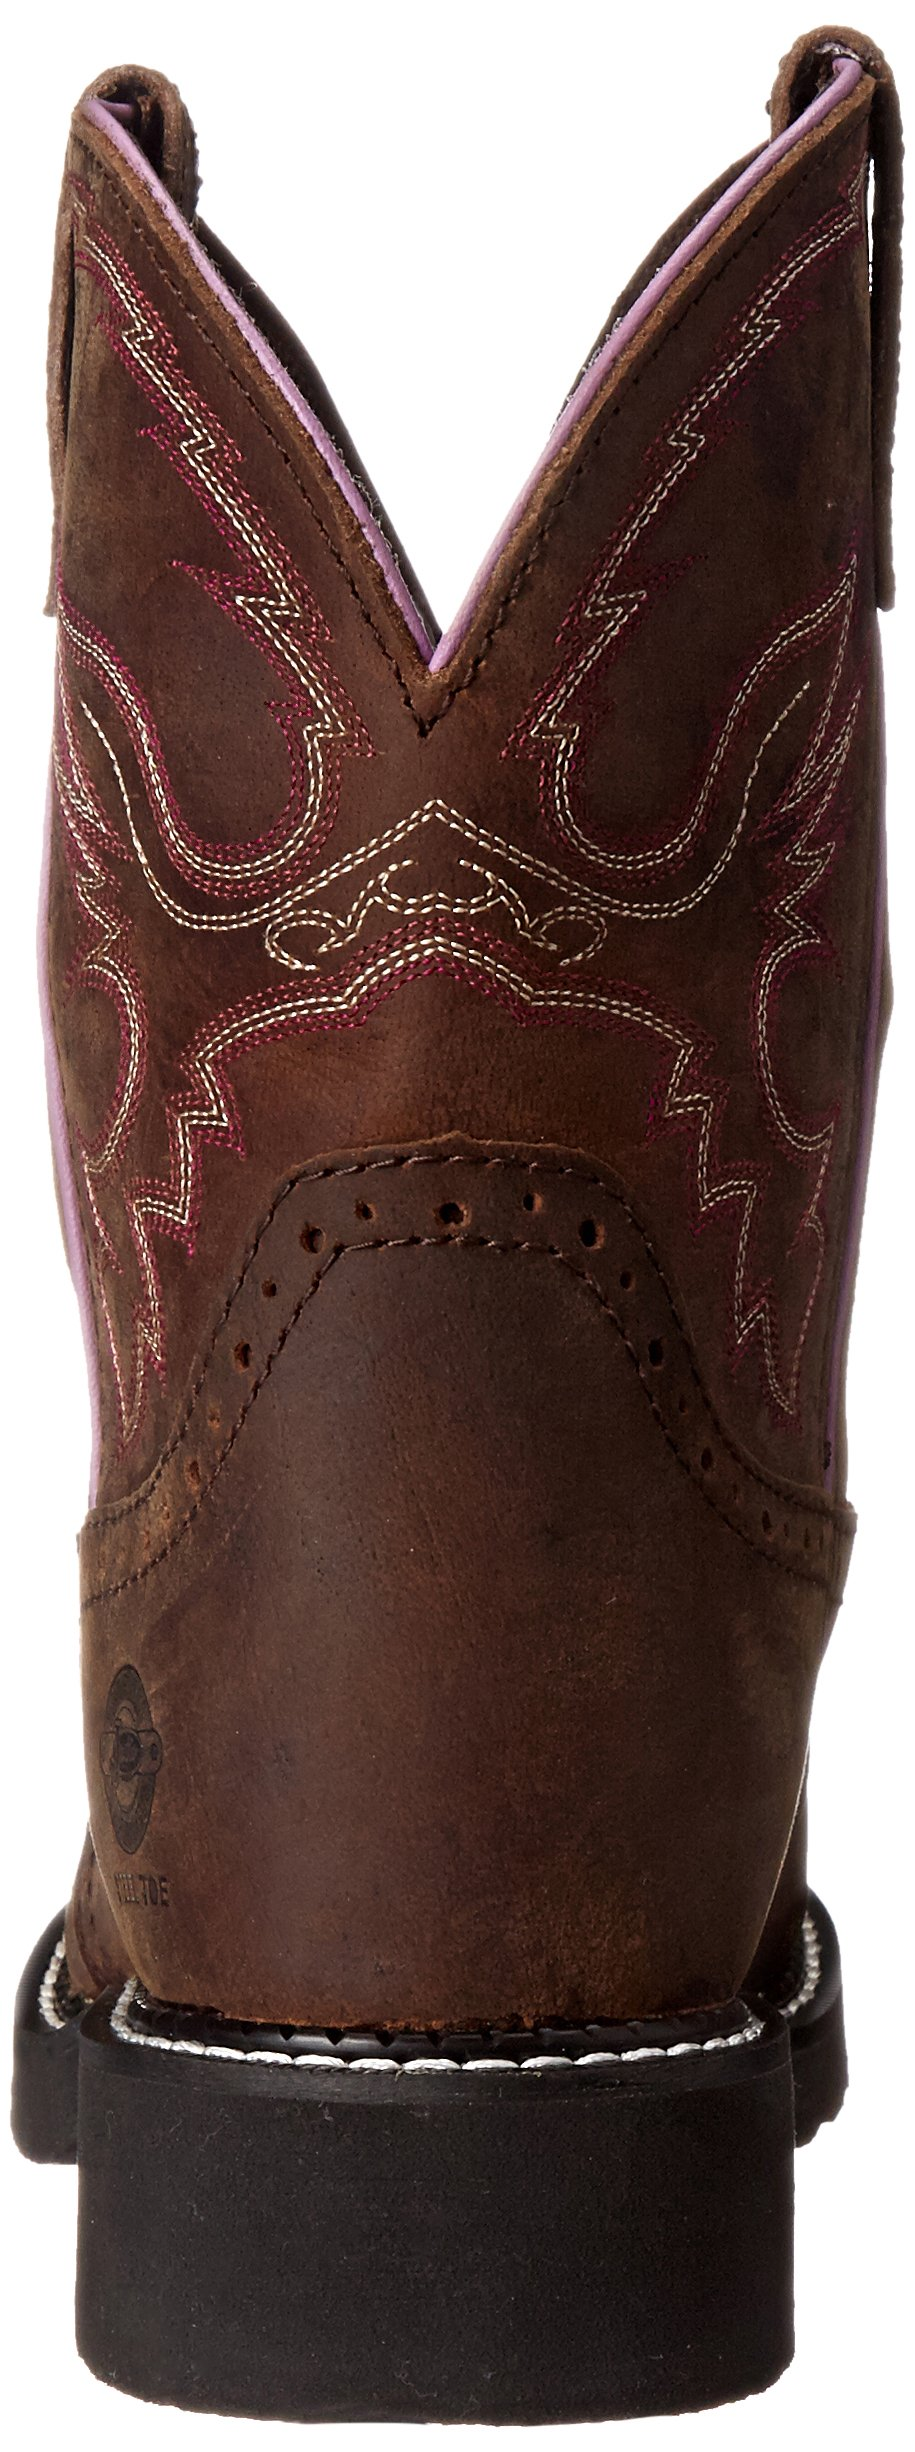 Justin Boots Women's Gypsy Collection 8'' Steel Toe,Aged Bark,6B by Justin Boots (Image #2)